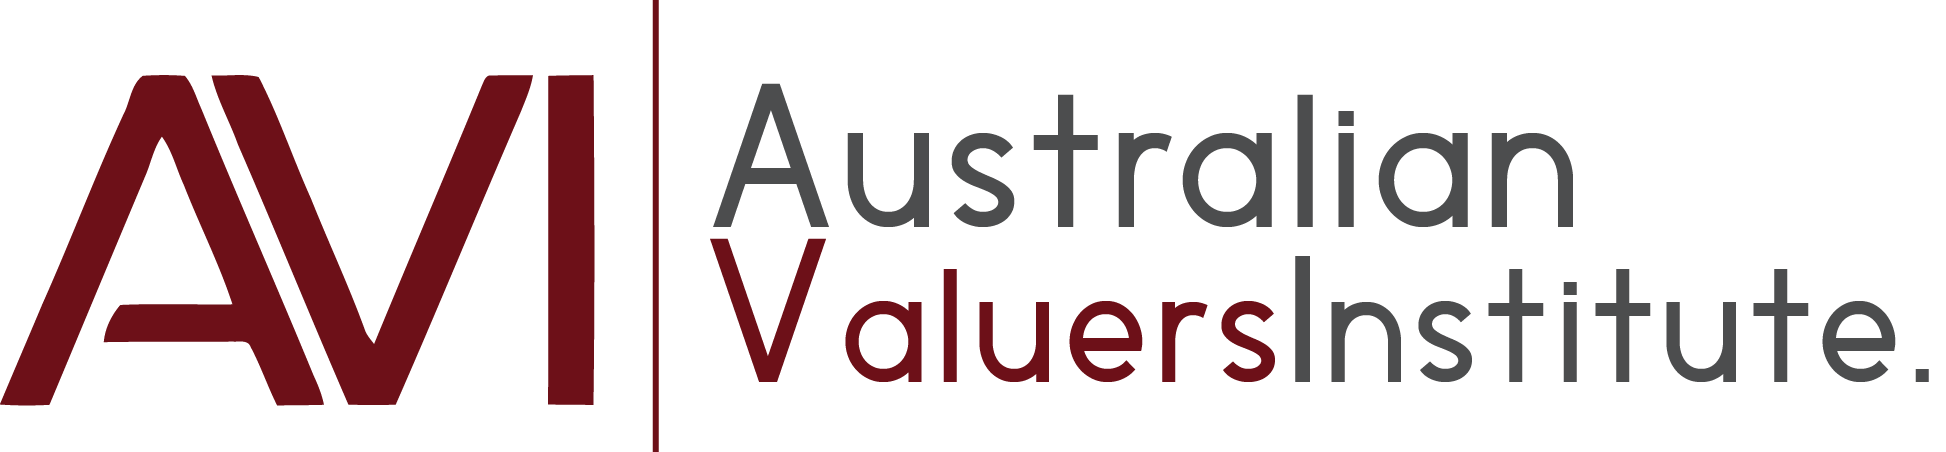 Australian Valuers Institute